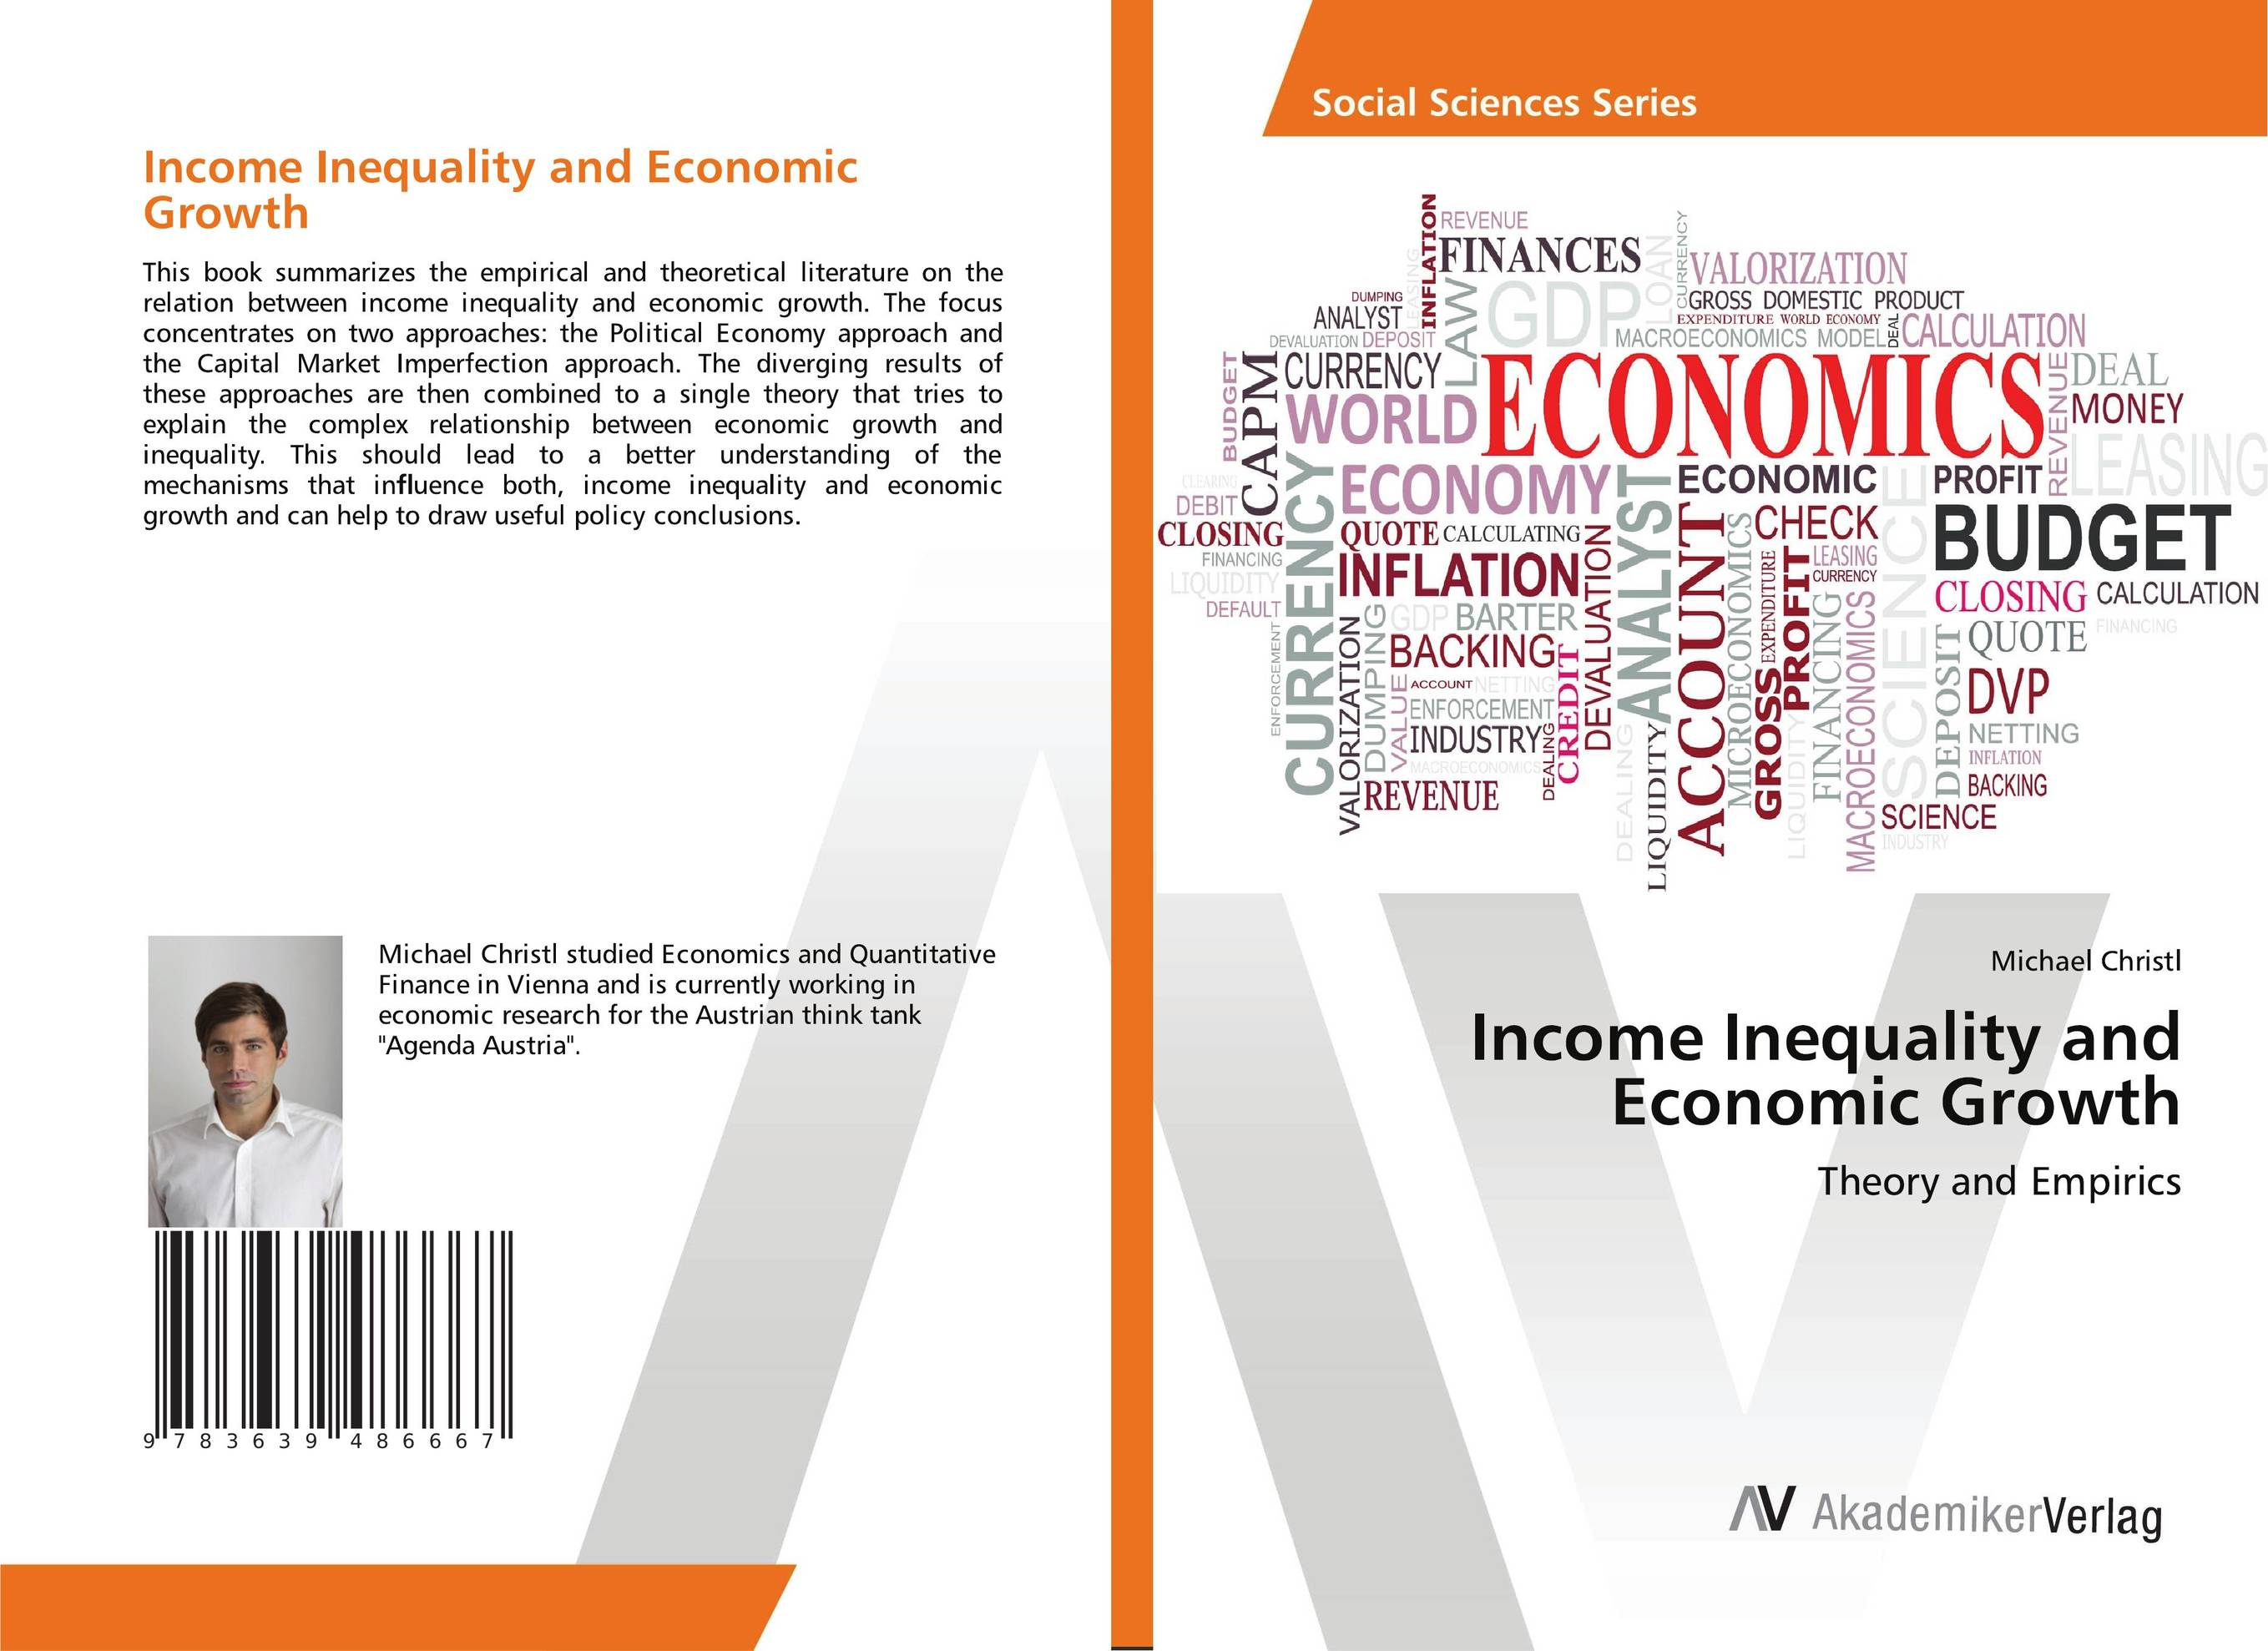 relationship between income inequality and growth economics essay This past september, heather boushey, equitable growth's executive director, and i released our survey of the literature on the relationship between inequality and growth we found that the research, while nuanced, indicates that higher inequality is associated with lower long-term economic growth.